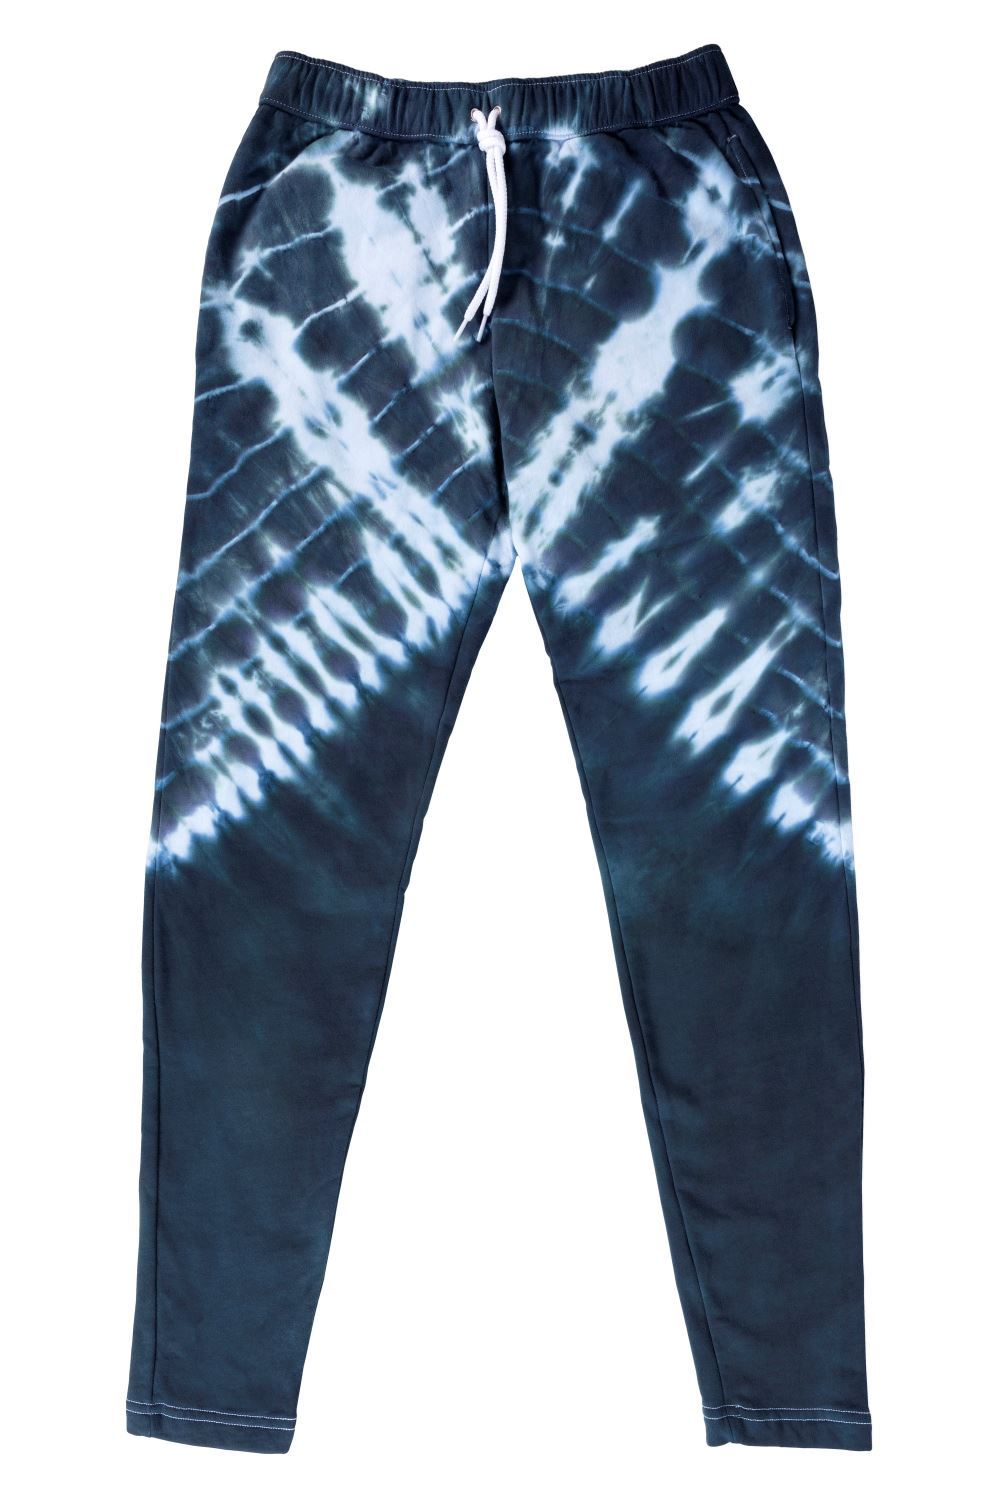 Tulip DIY Tie-Dye Leggings